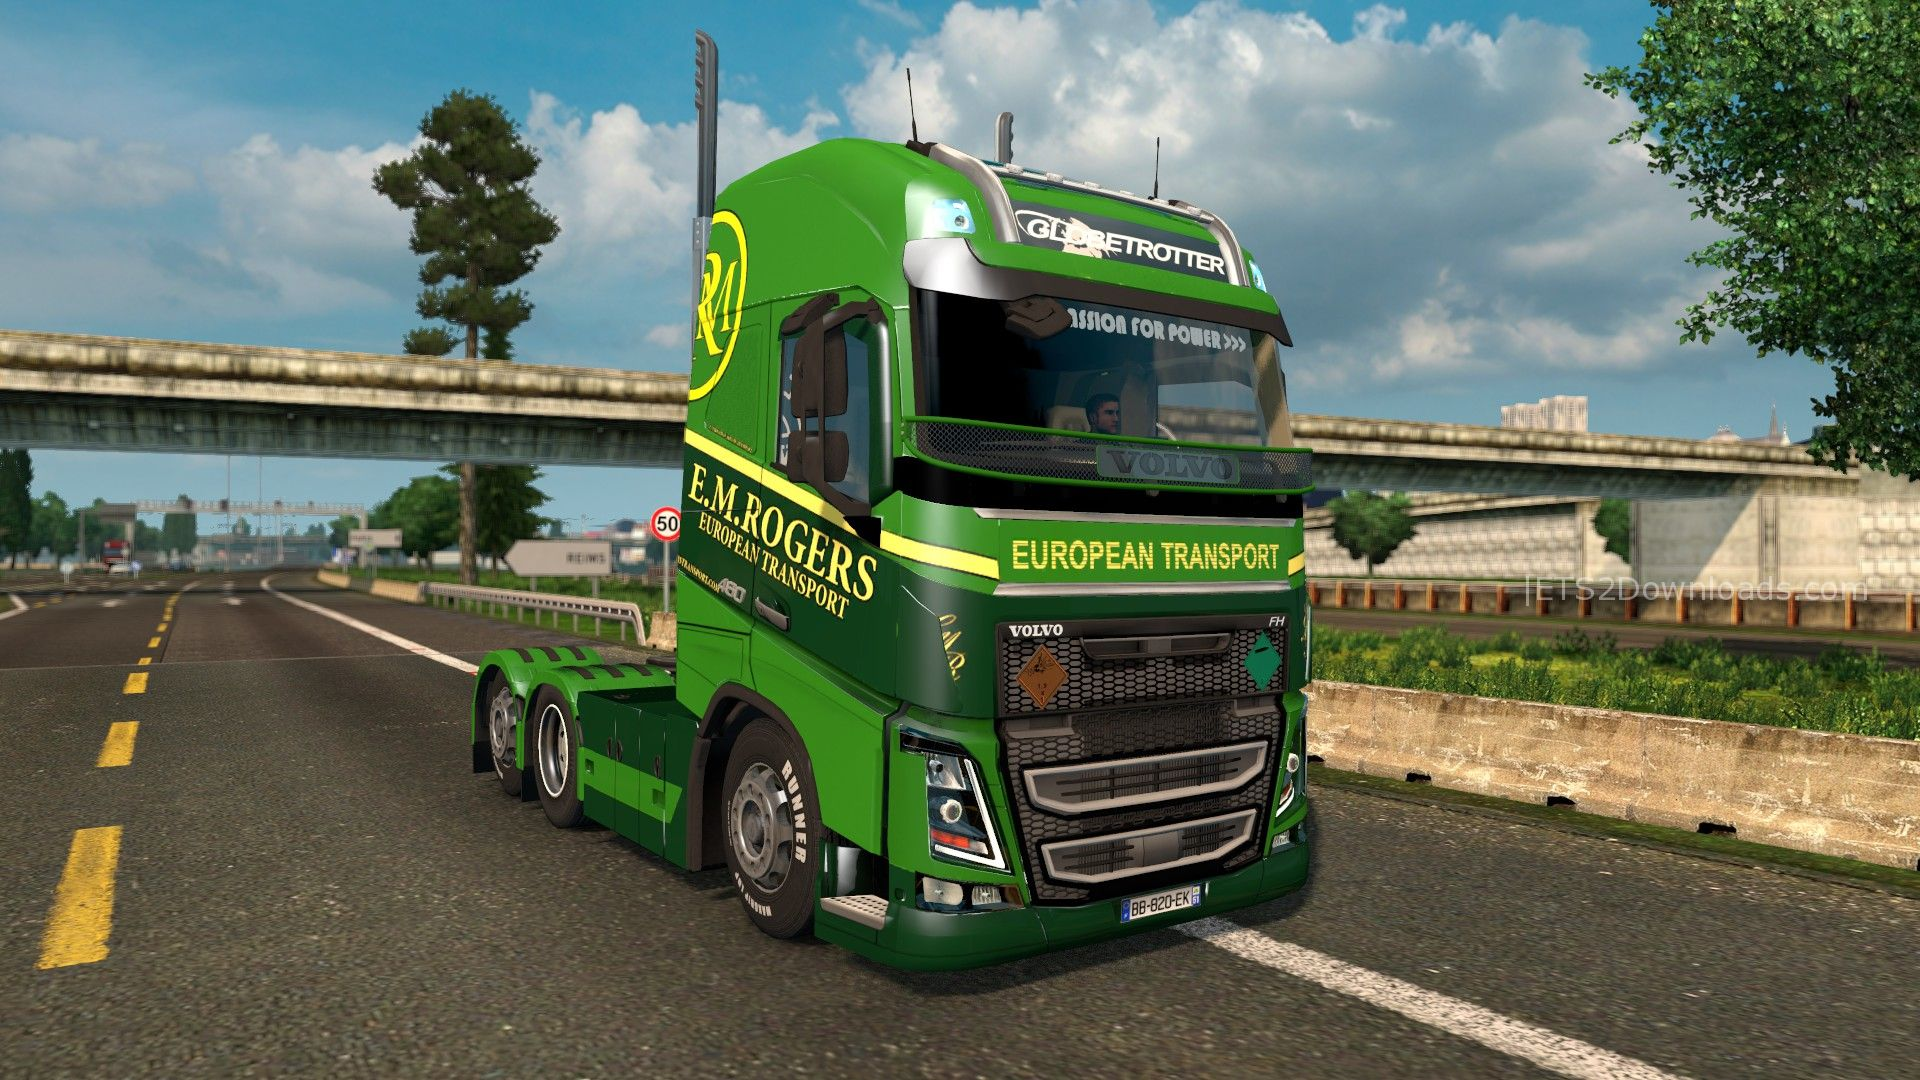 e-m-rogers-skin-for-volvo-fh16-2013-1